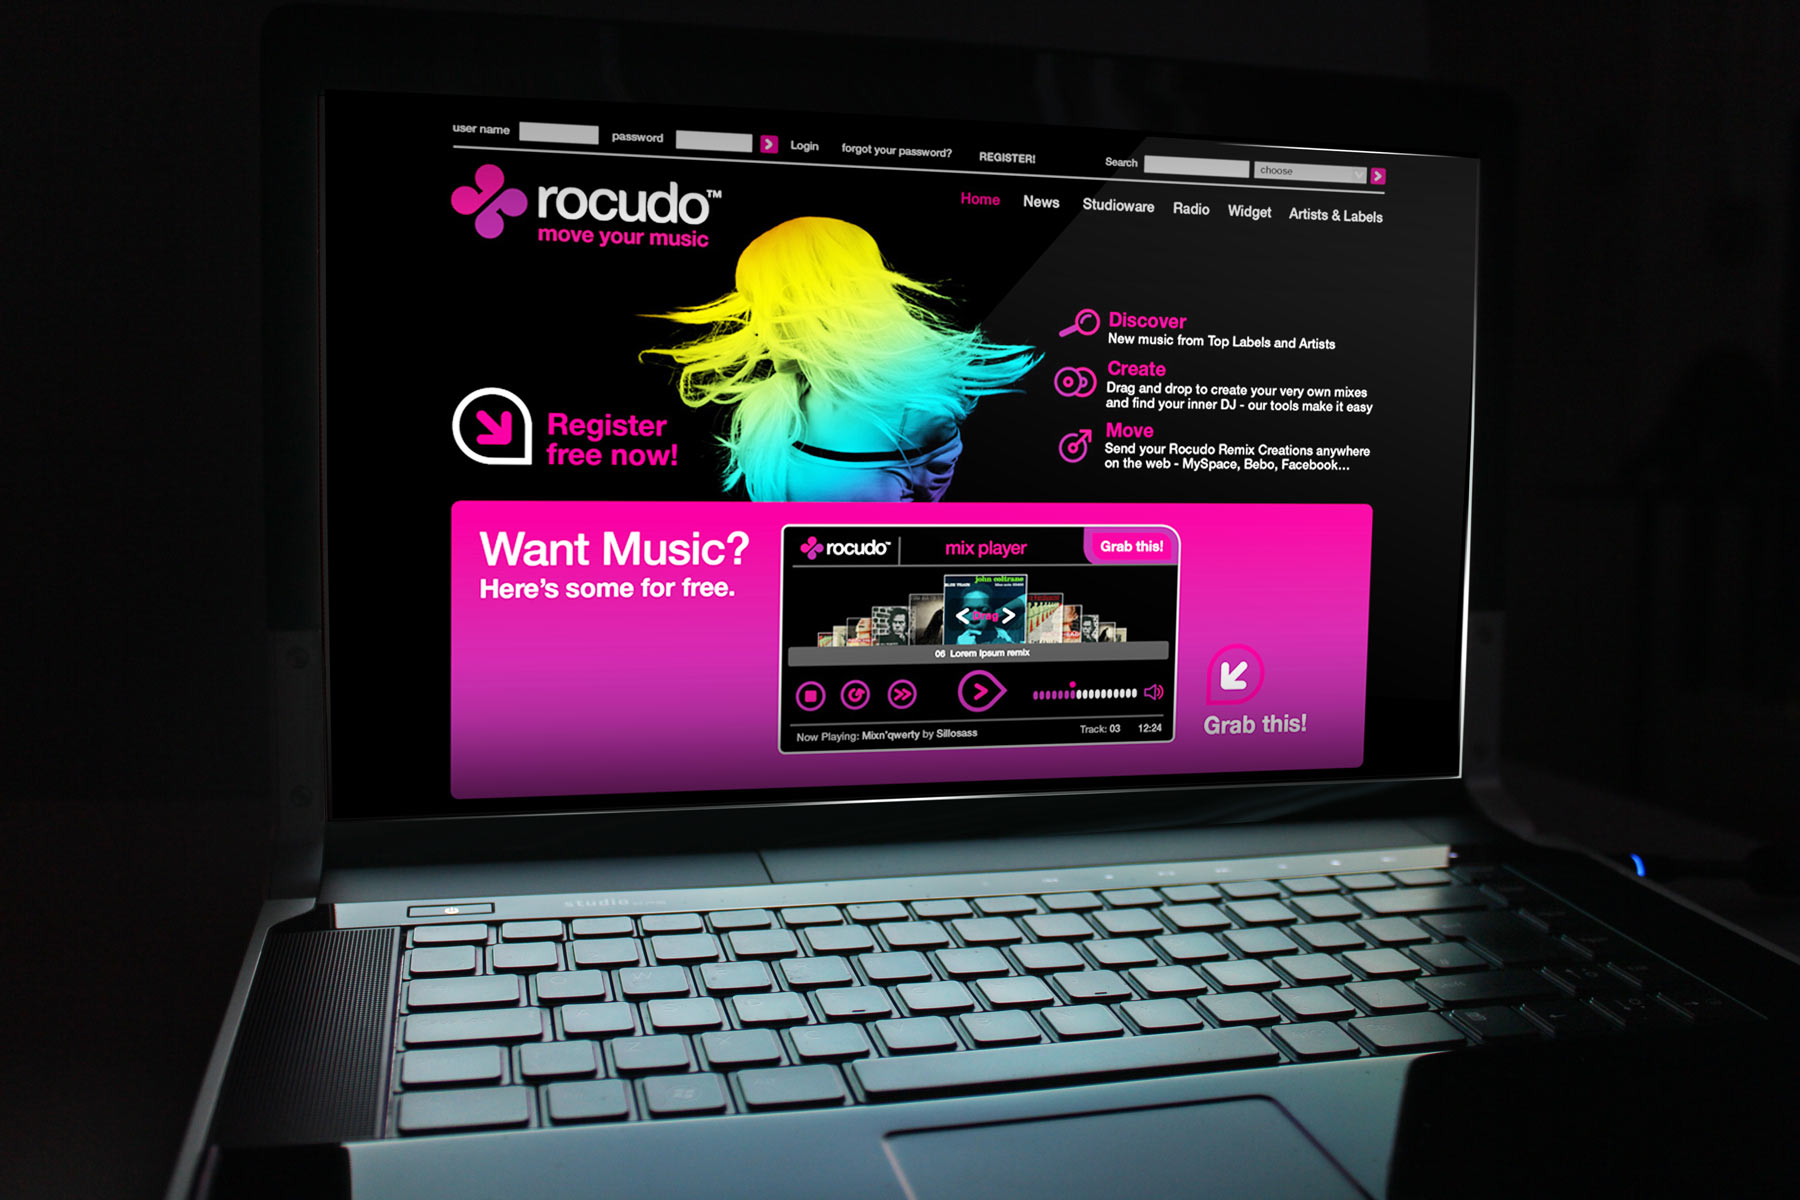 For the web front end, we developed a glossy look and feel that suits the aesthetic of the target market.